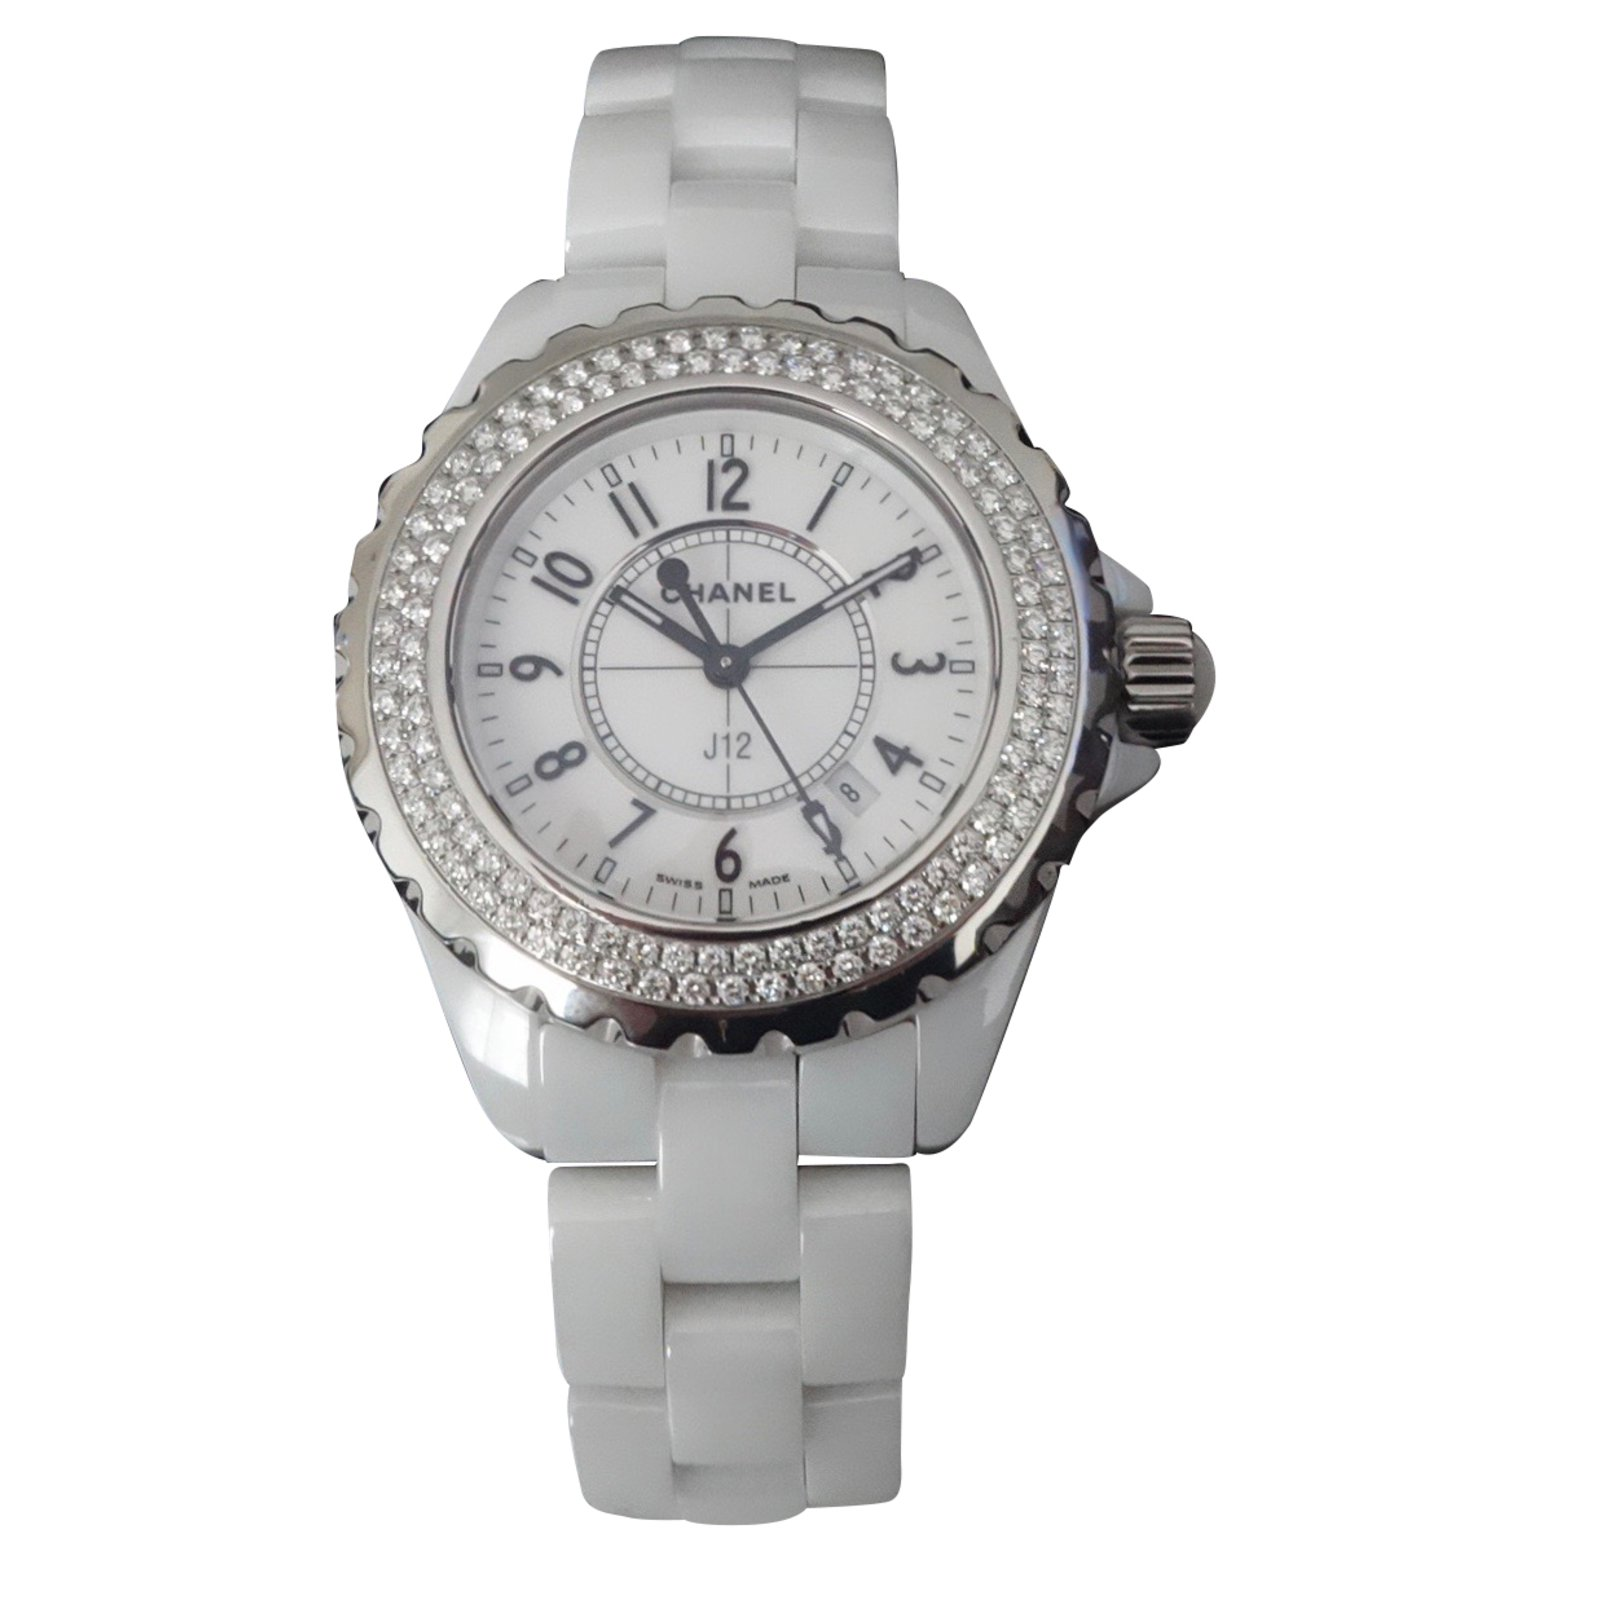 more buy pin or want plase series watch female visit white watches if chanel you camellia to